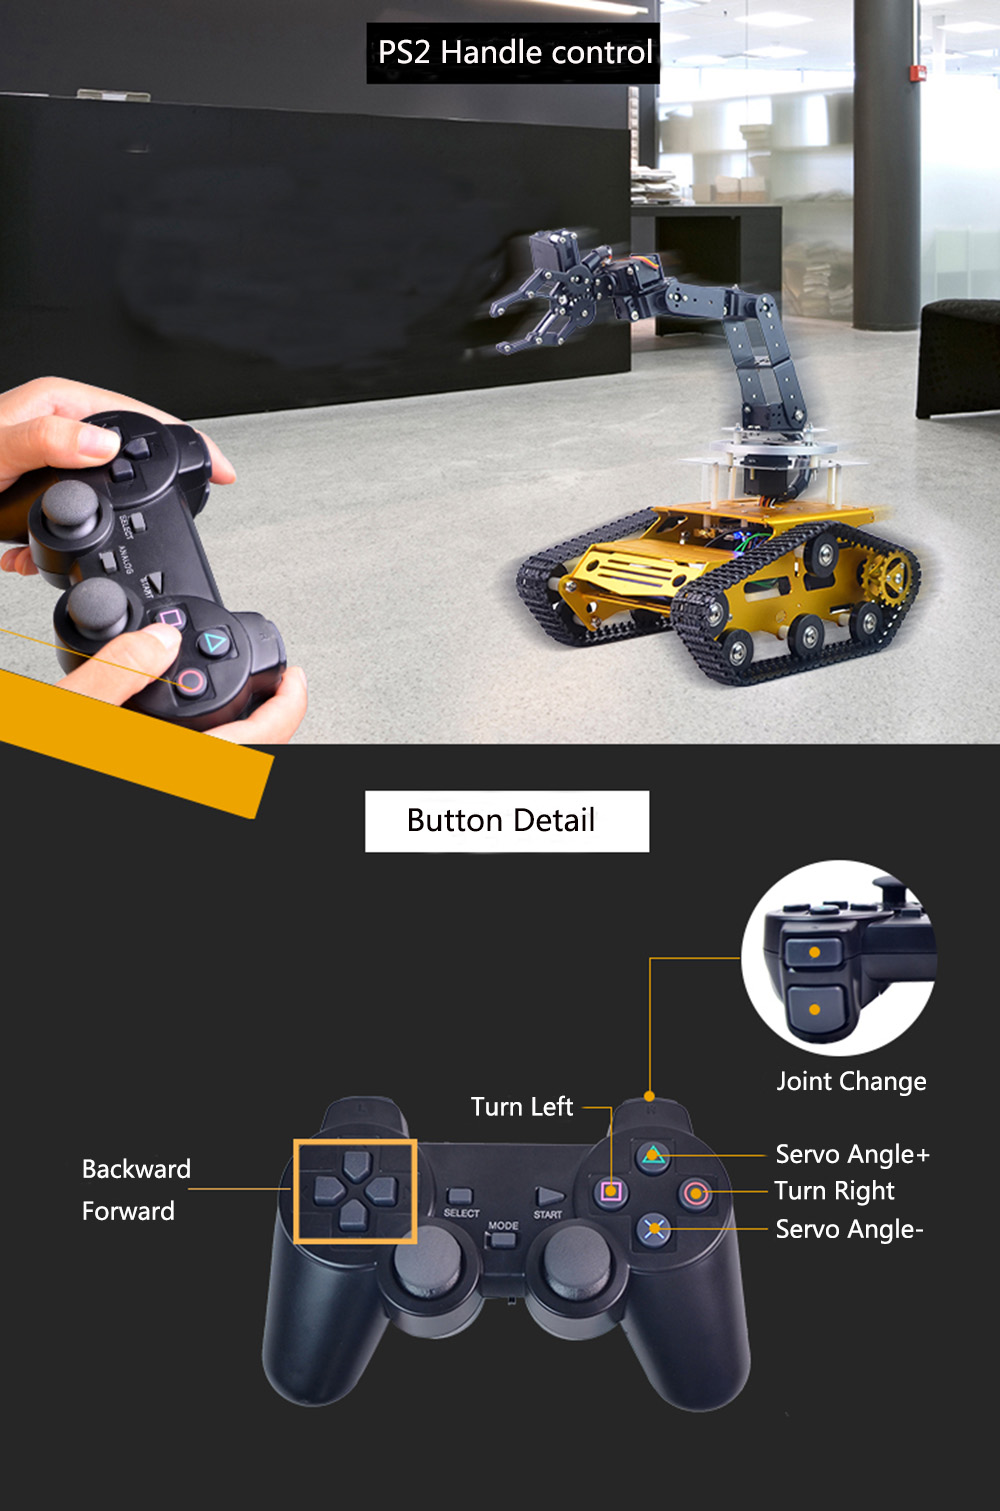 XIAO R Avatar Raspberry Pi 3B+ DIY 6DOF Metal RC Robot Arm Car Programmable  APP PS2 Handle Control